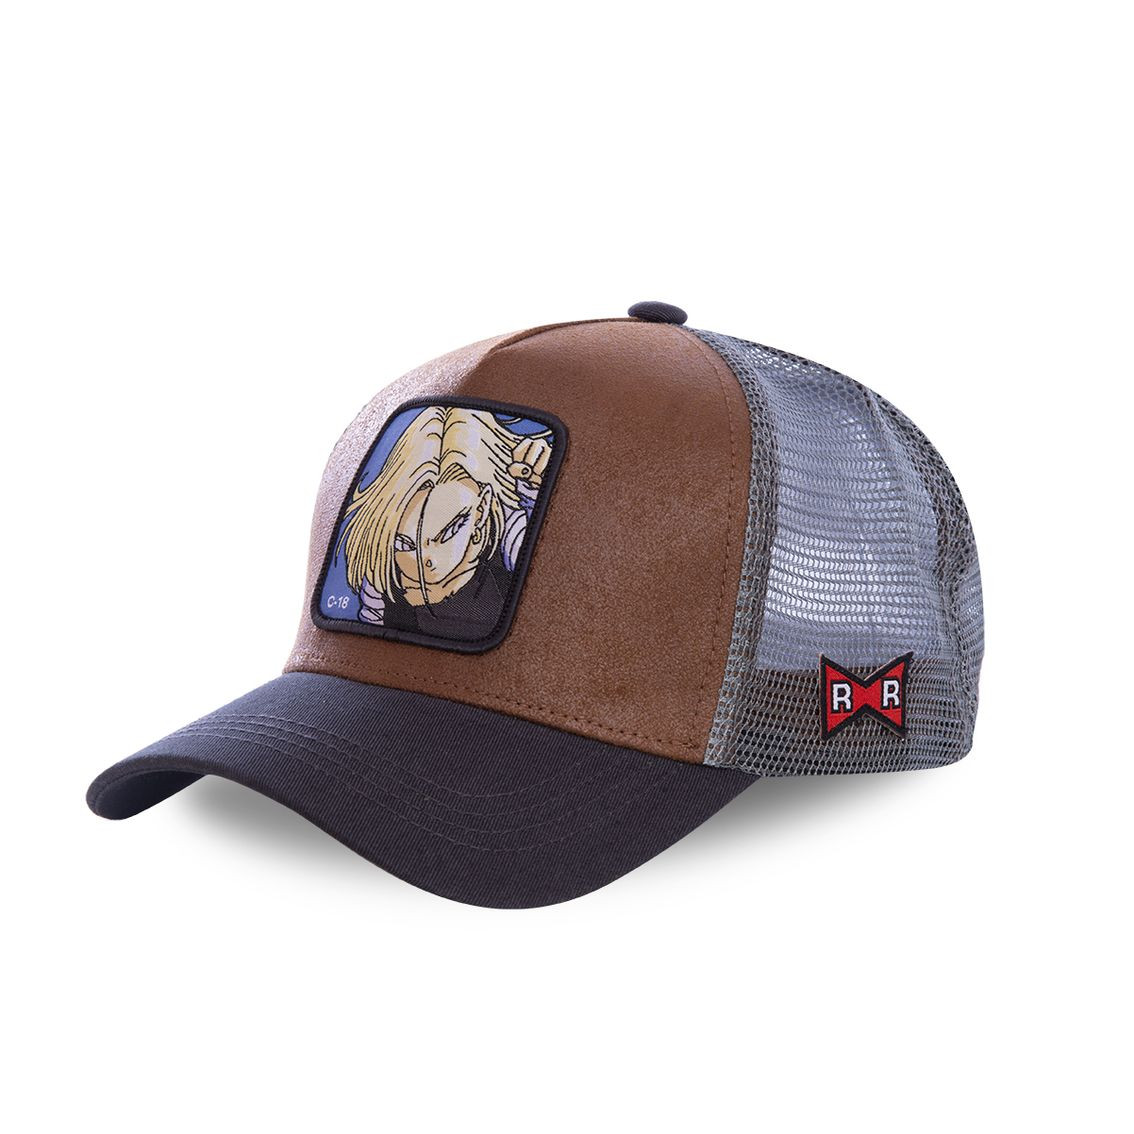 Casquette capslab dragon ball z c-18 marron (photo)